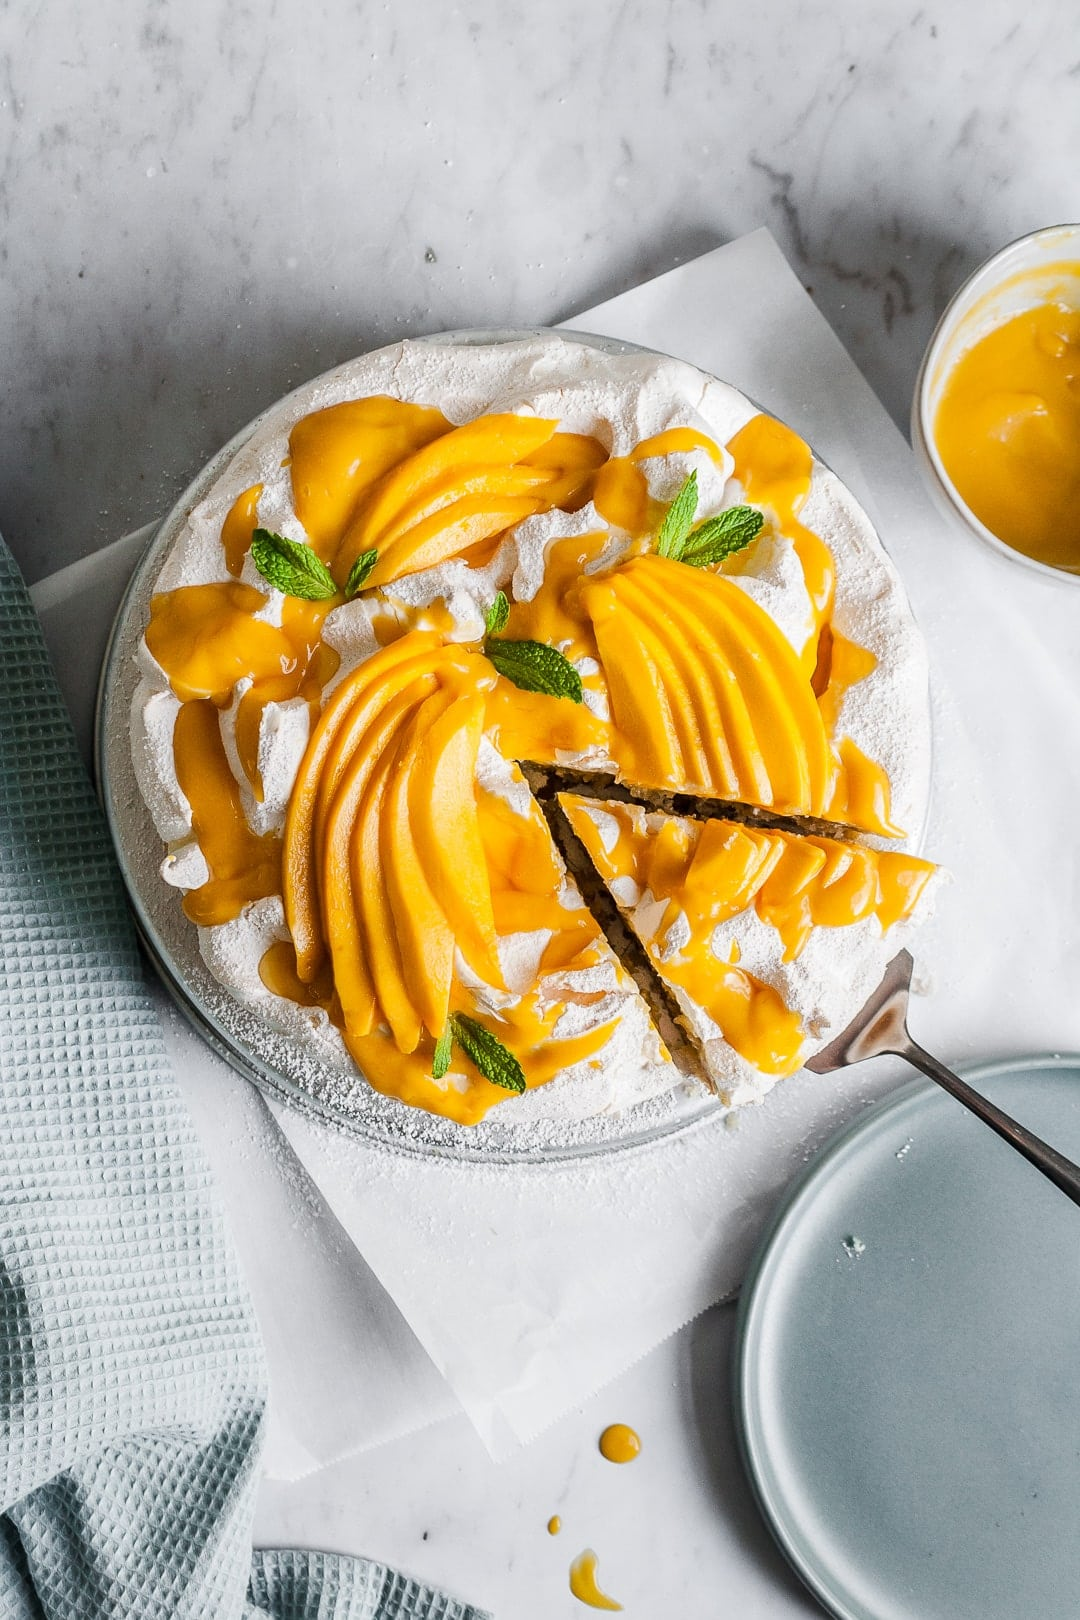 Meringue cake with mangoes on top with a slice being lifted out to put on a plate